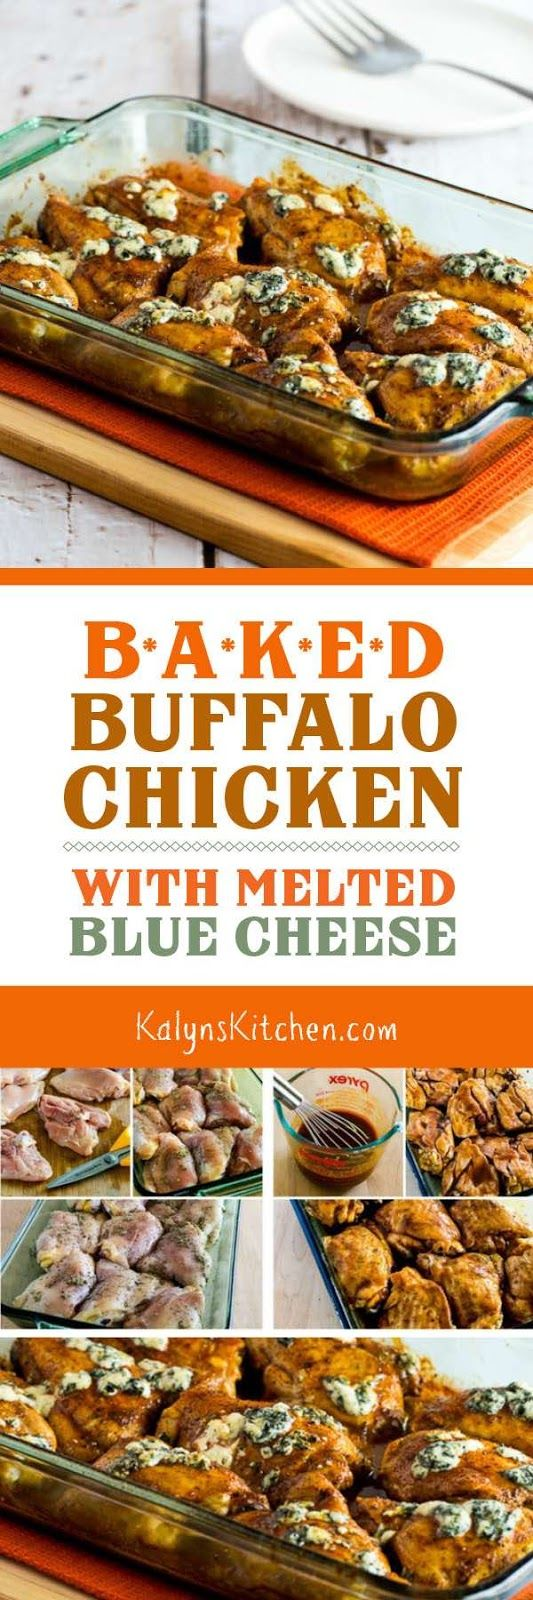 Baked Buffalo Chicken with Melted Blue Cheese is a delicious dinner that's low-carb, Keto, low-glycemic, and gluten-free, and if you trim the chicken well and use a moderate amount of cheese I'd eat this for the South Beach Diet as well. If you like Buffalo Wings, you'll love this recipe! [ found on KalynsKitchen.com]